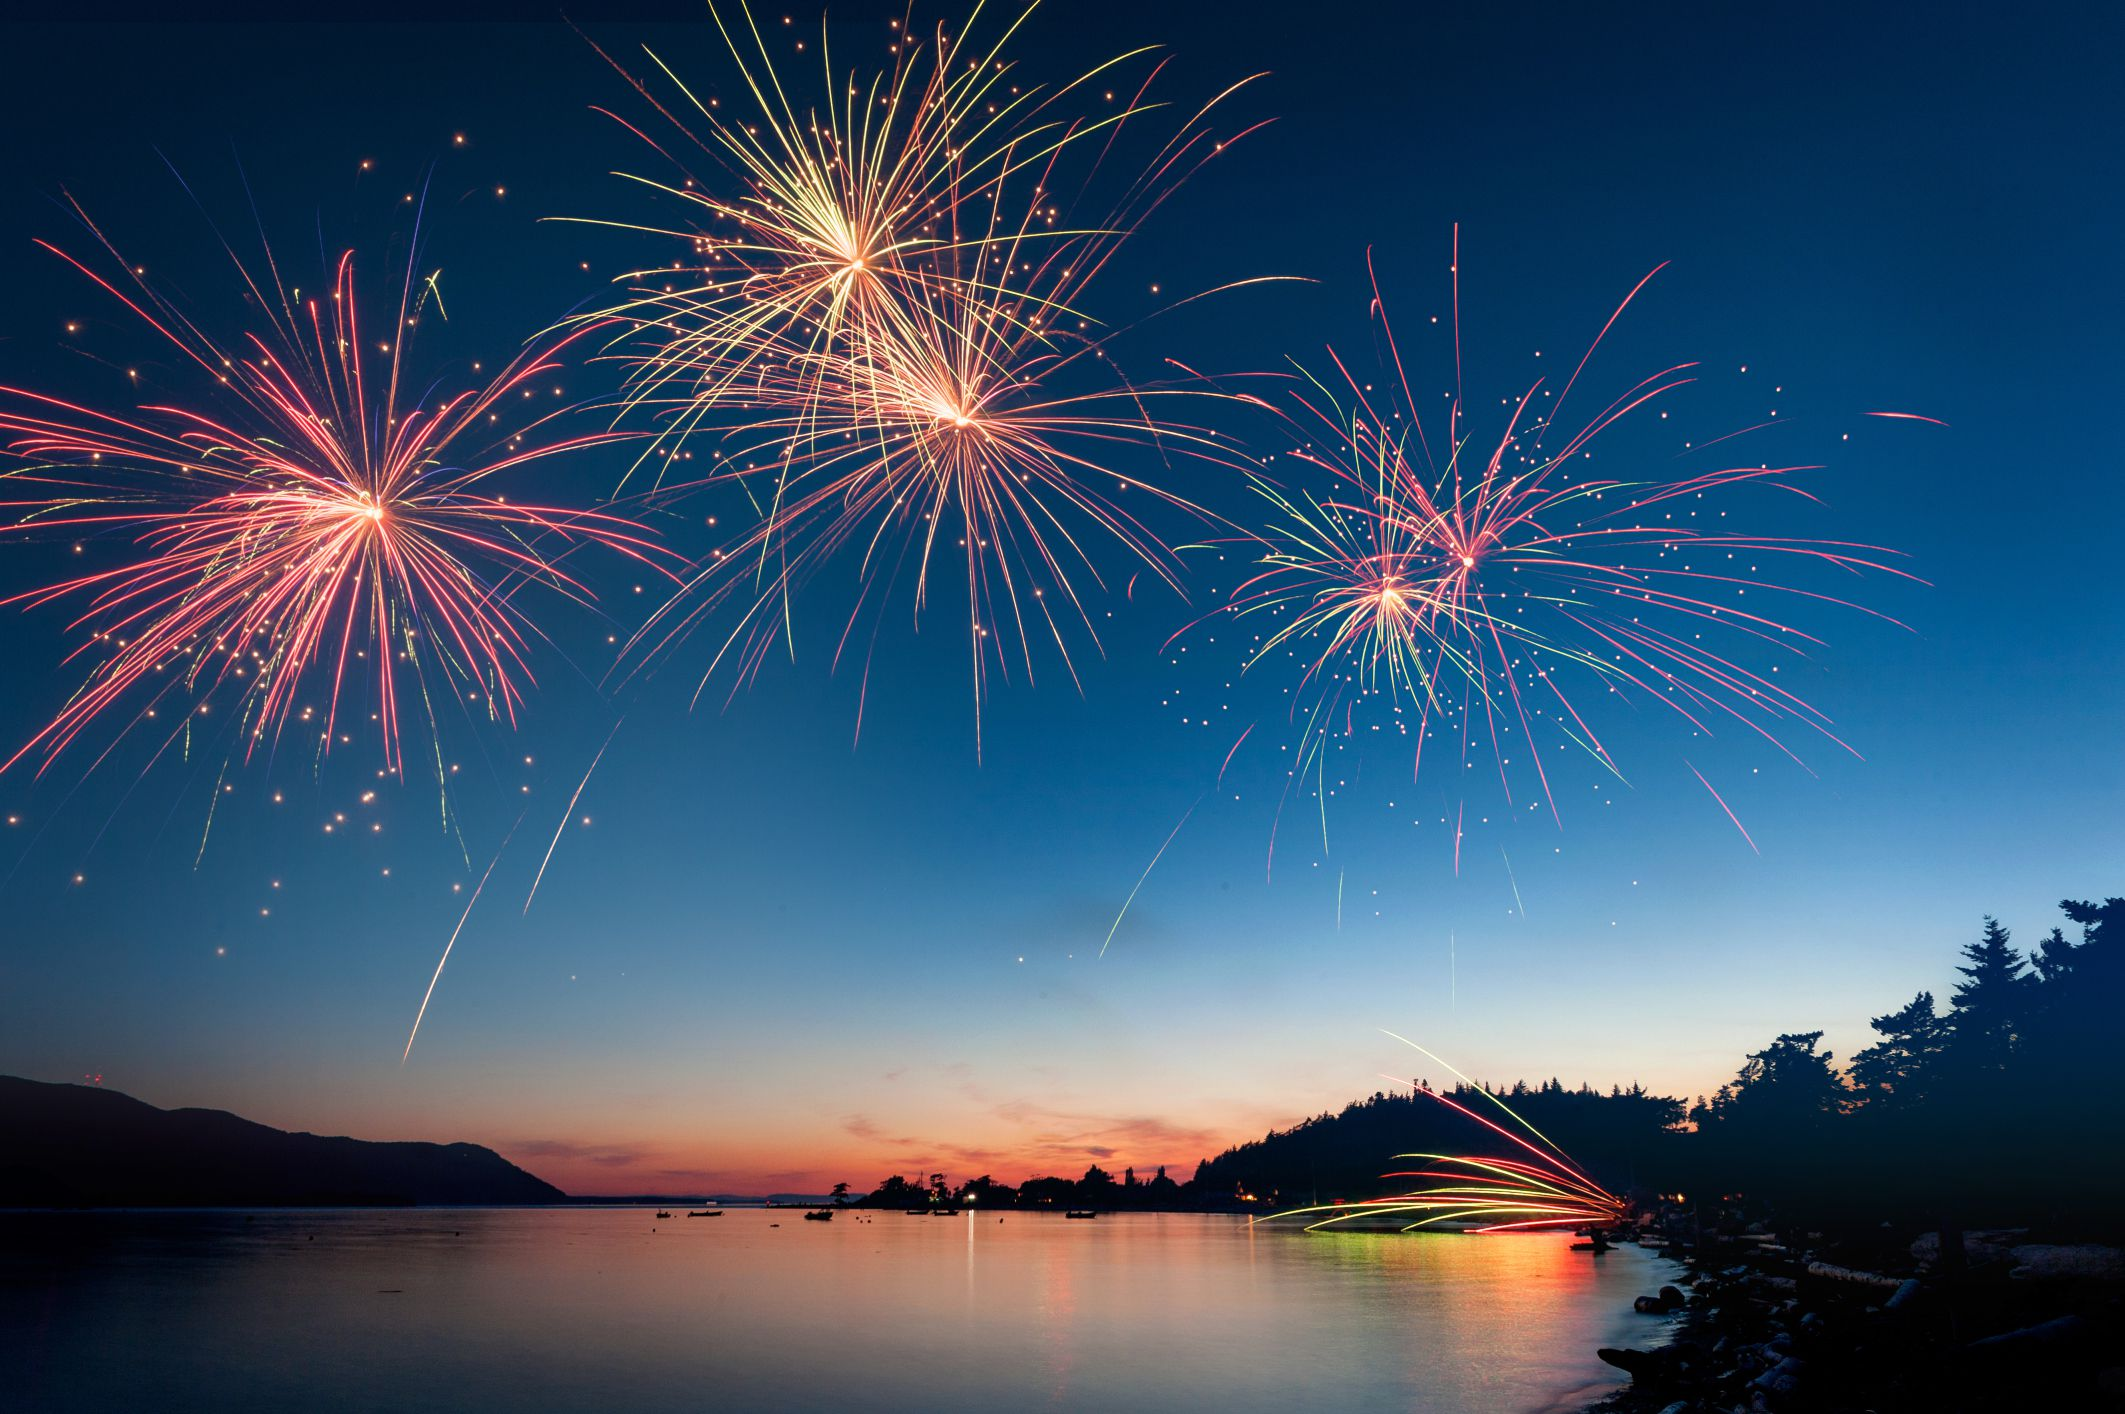 florida fireworks laws what fireworks are legal